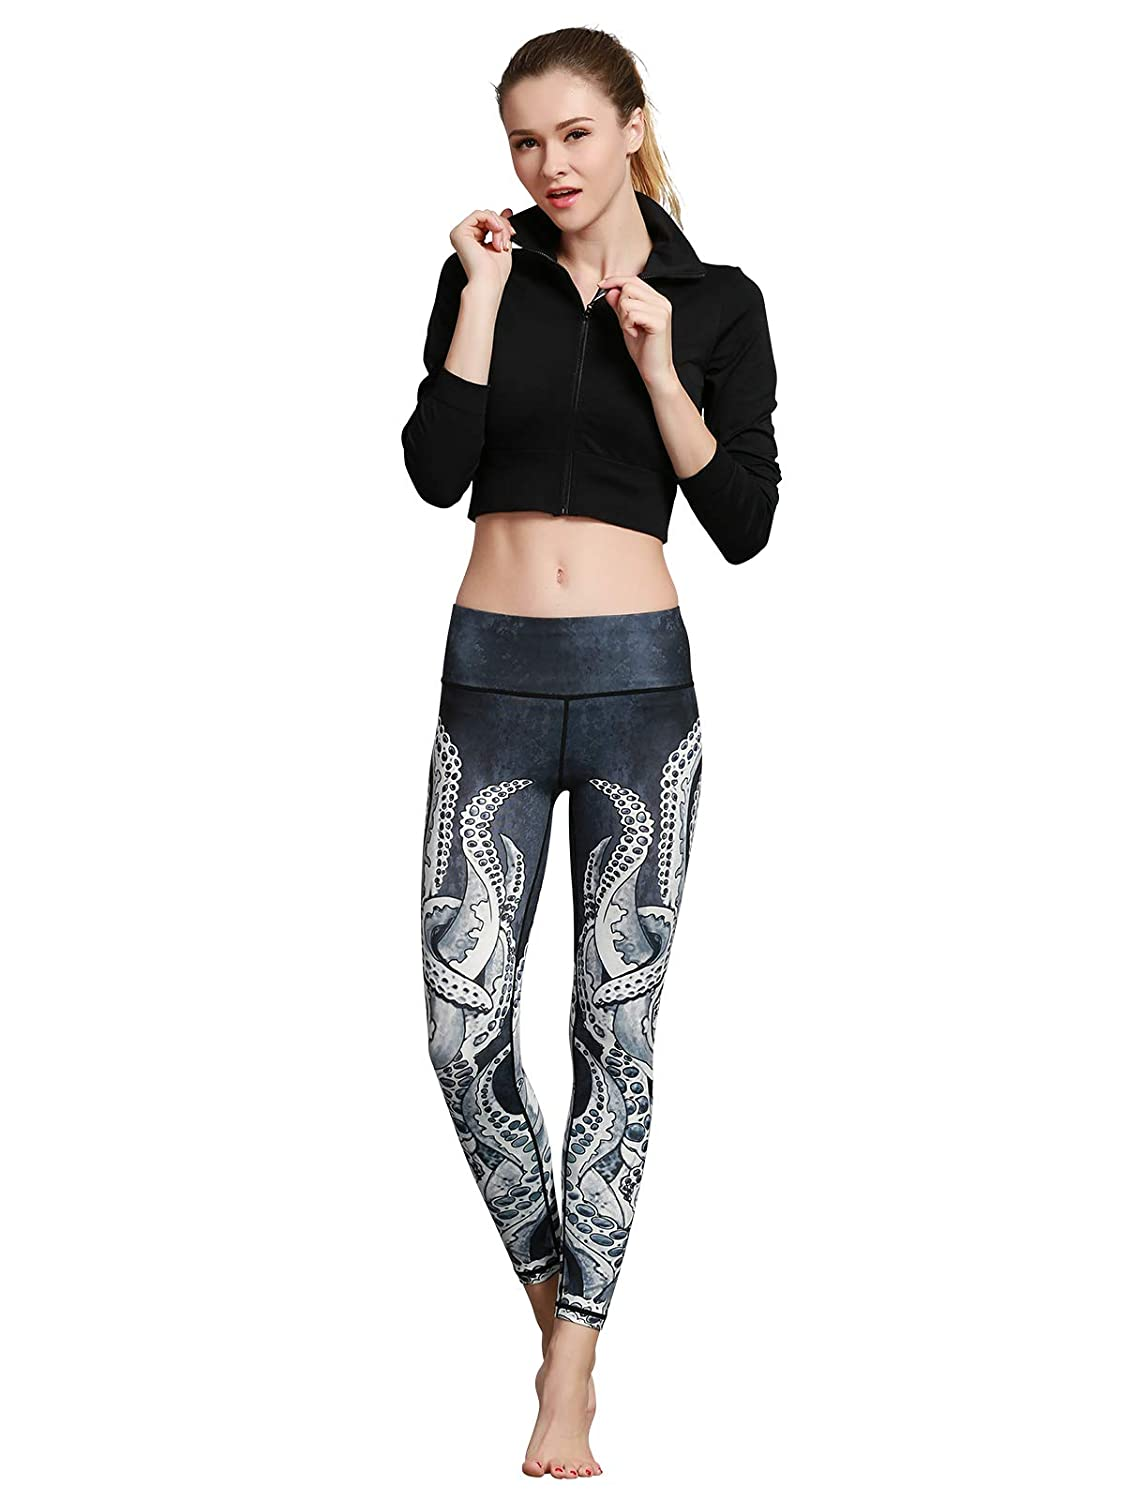 Q Octopus FINEMORE Women Printed Yoga Pants Stretchy Pilates Workout Sport Yoga Leggings